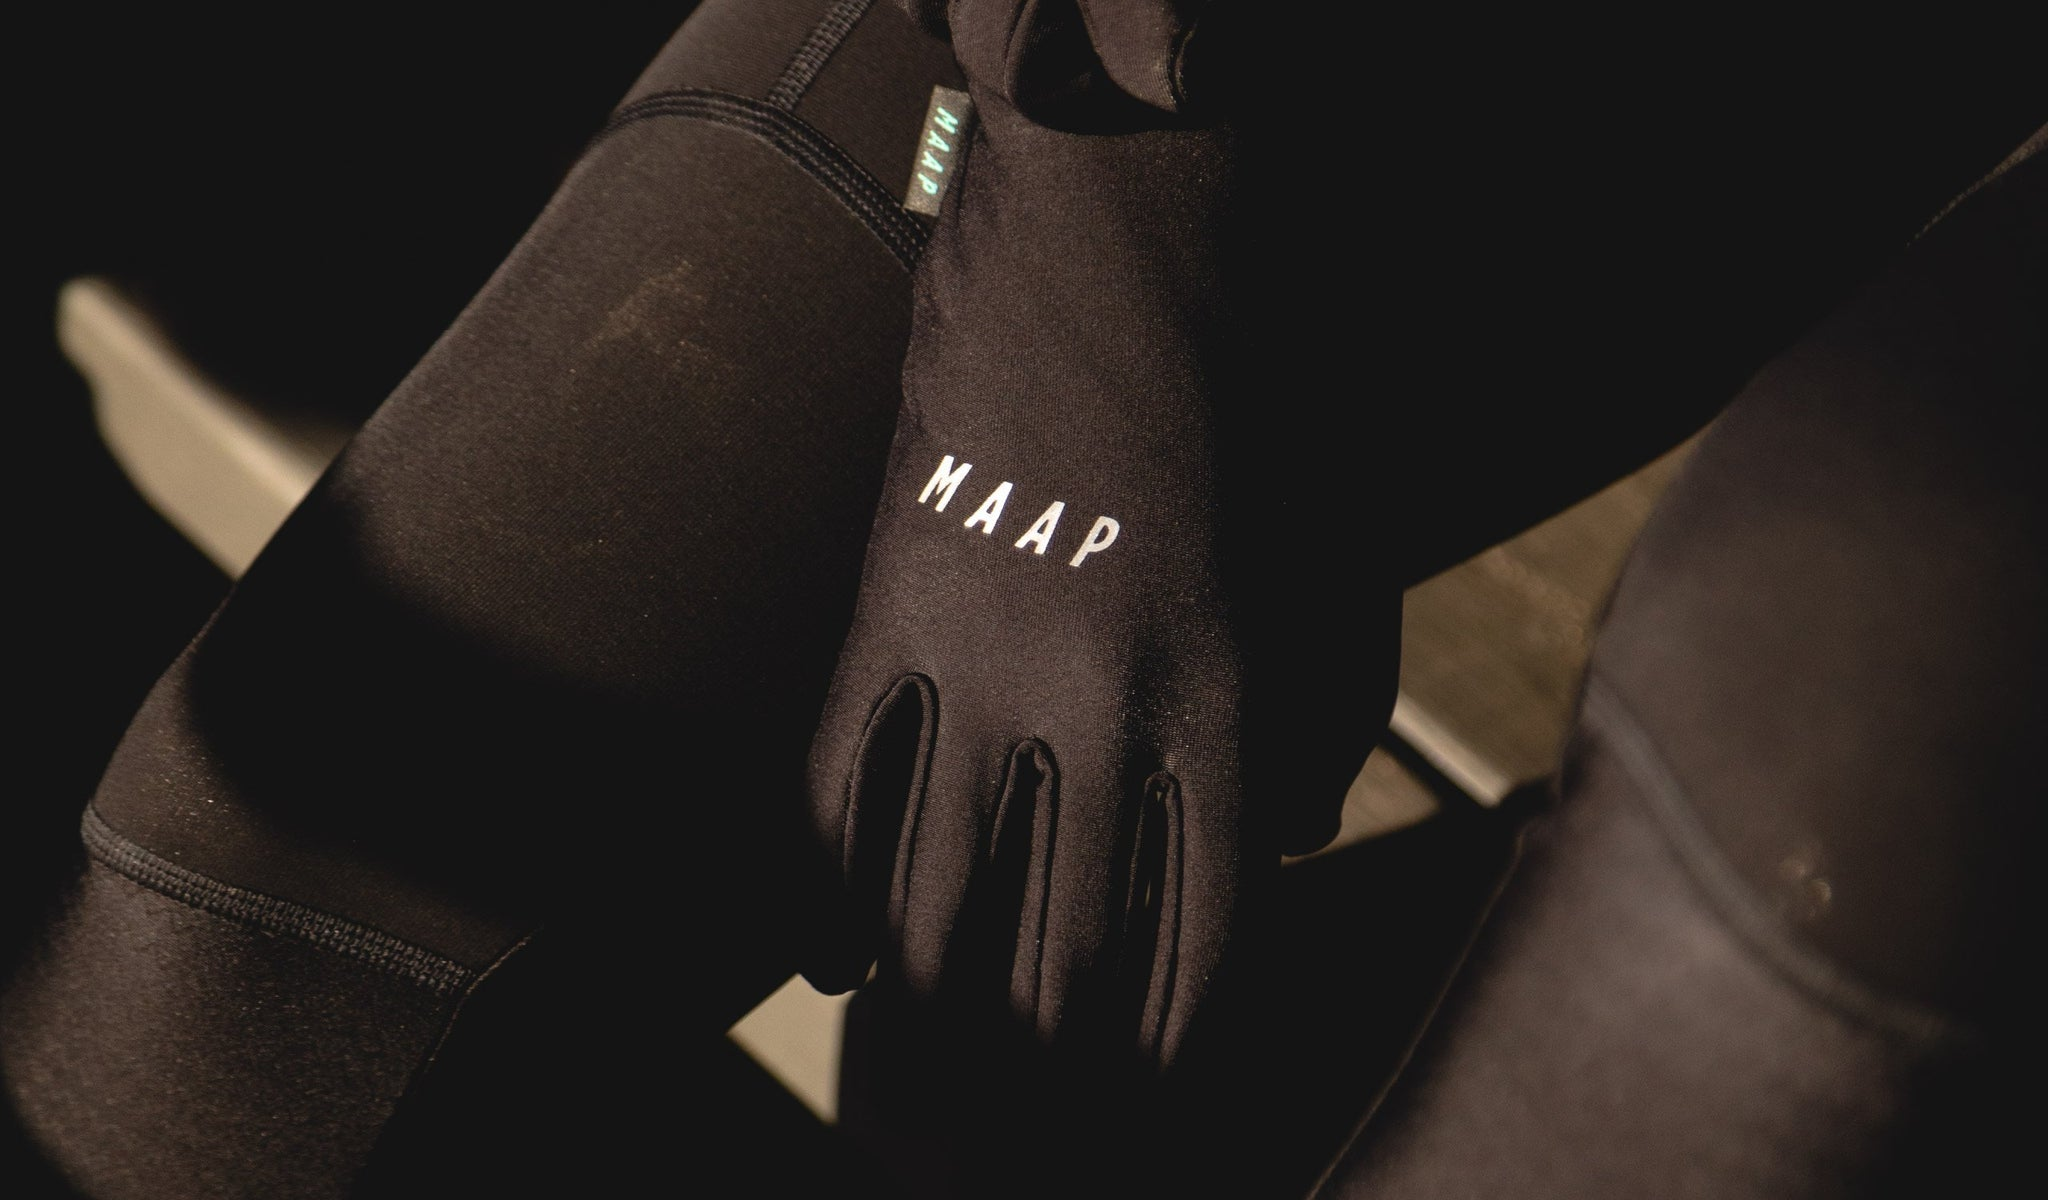 MAAP Base Gloves are made for mid-season cycling in colder temperatures.